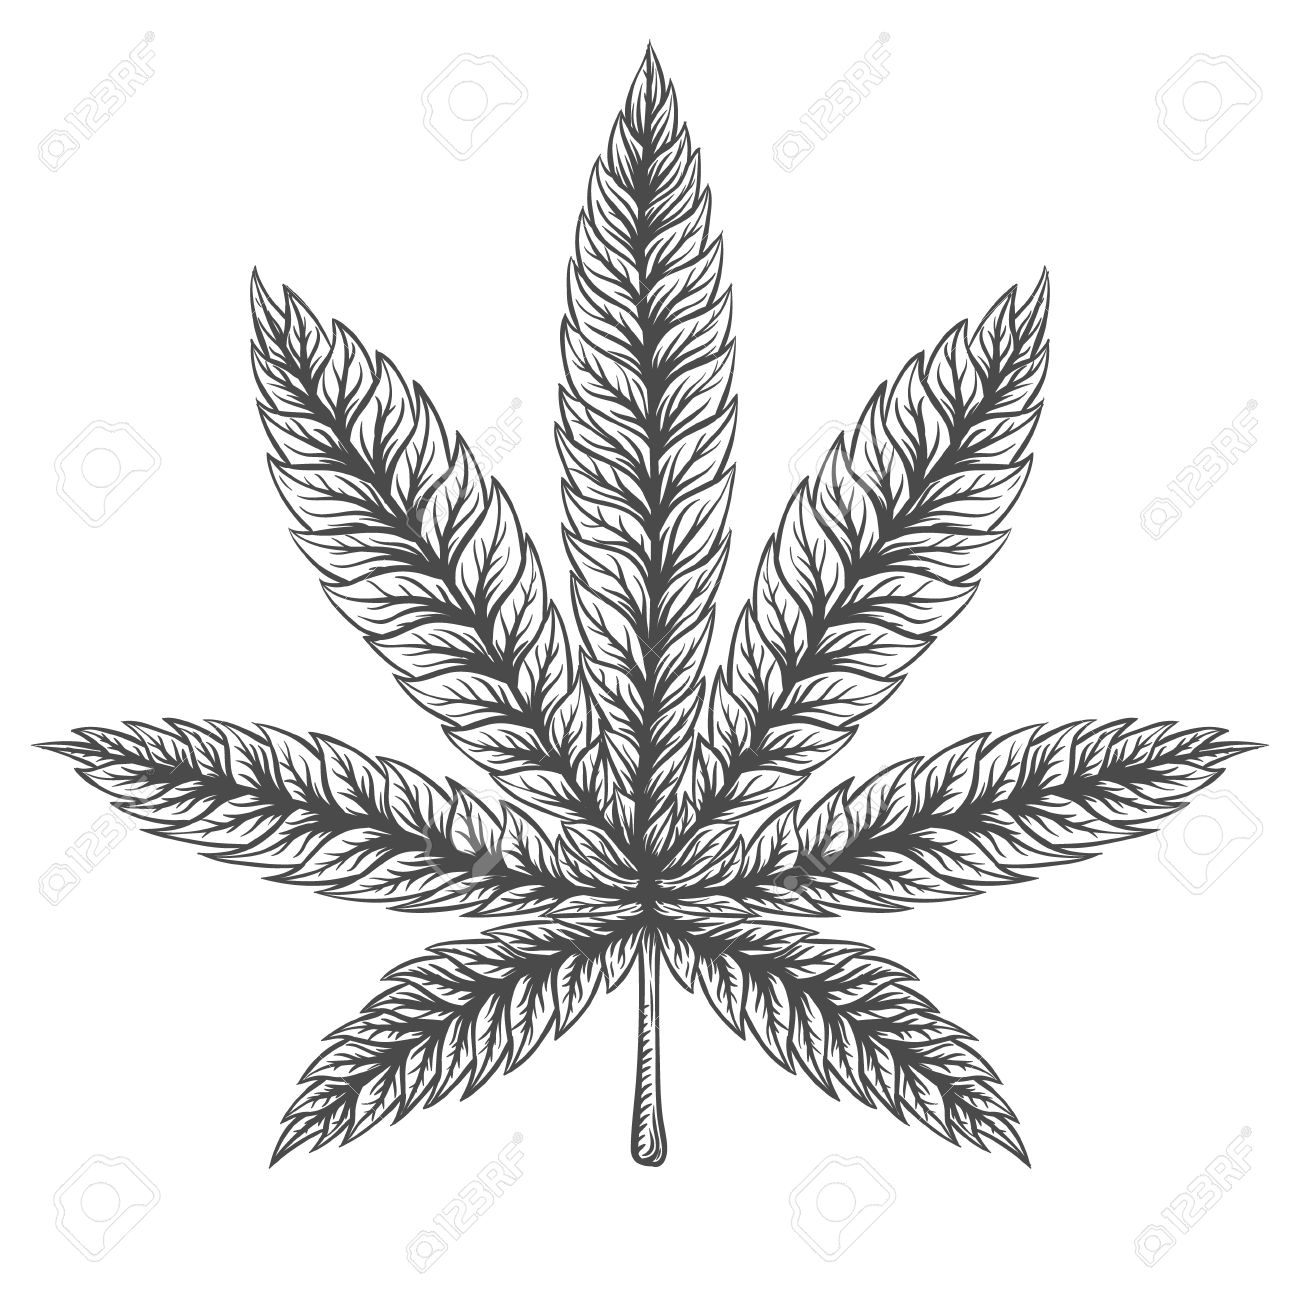 Weed Leaf Drawing at GetDrawings.com | Free for personal use Weed ...